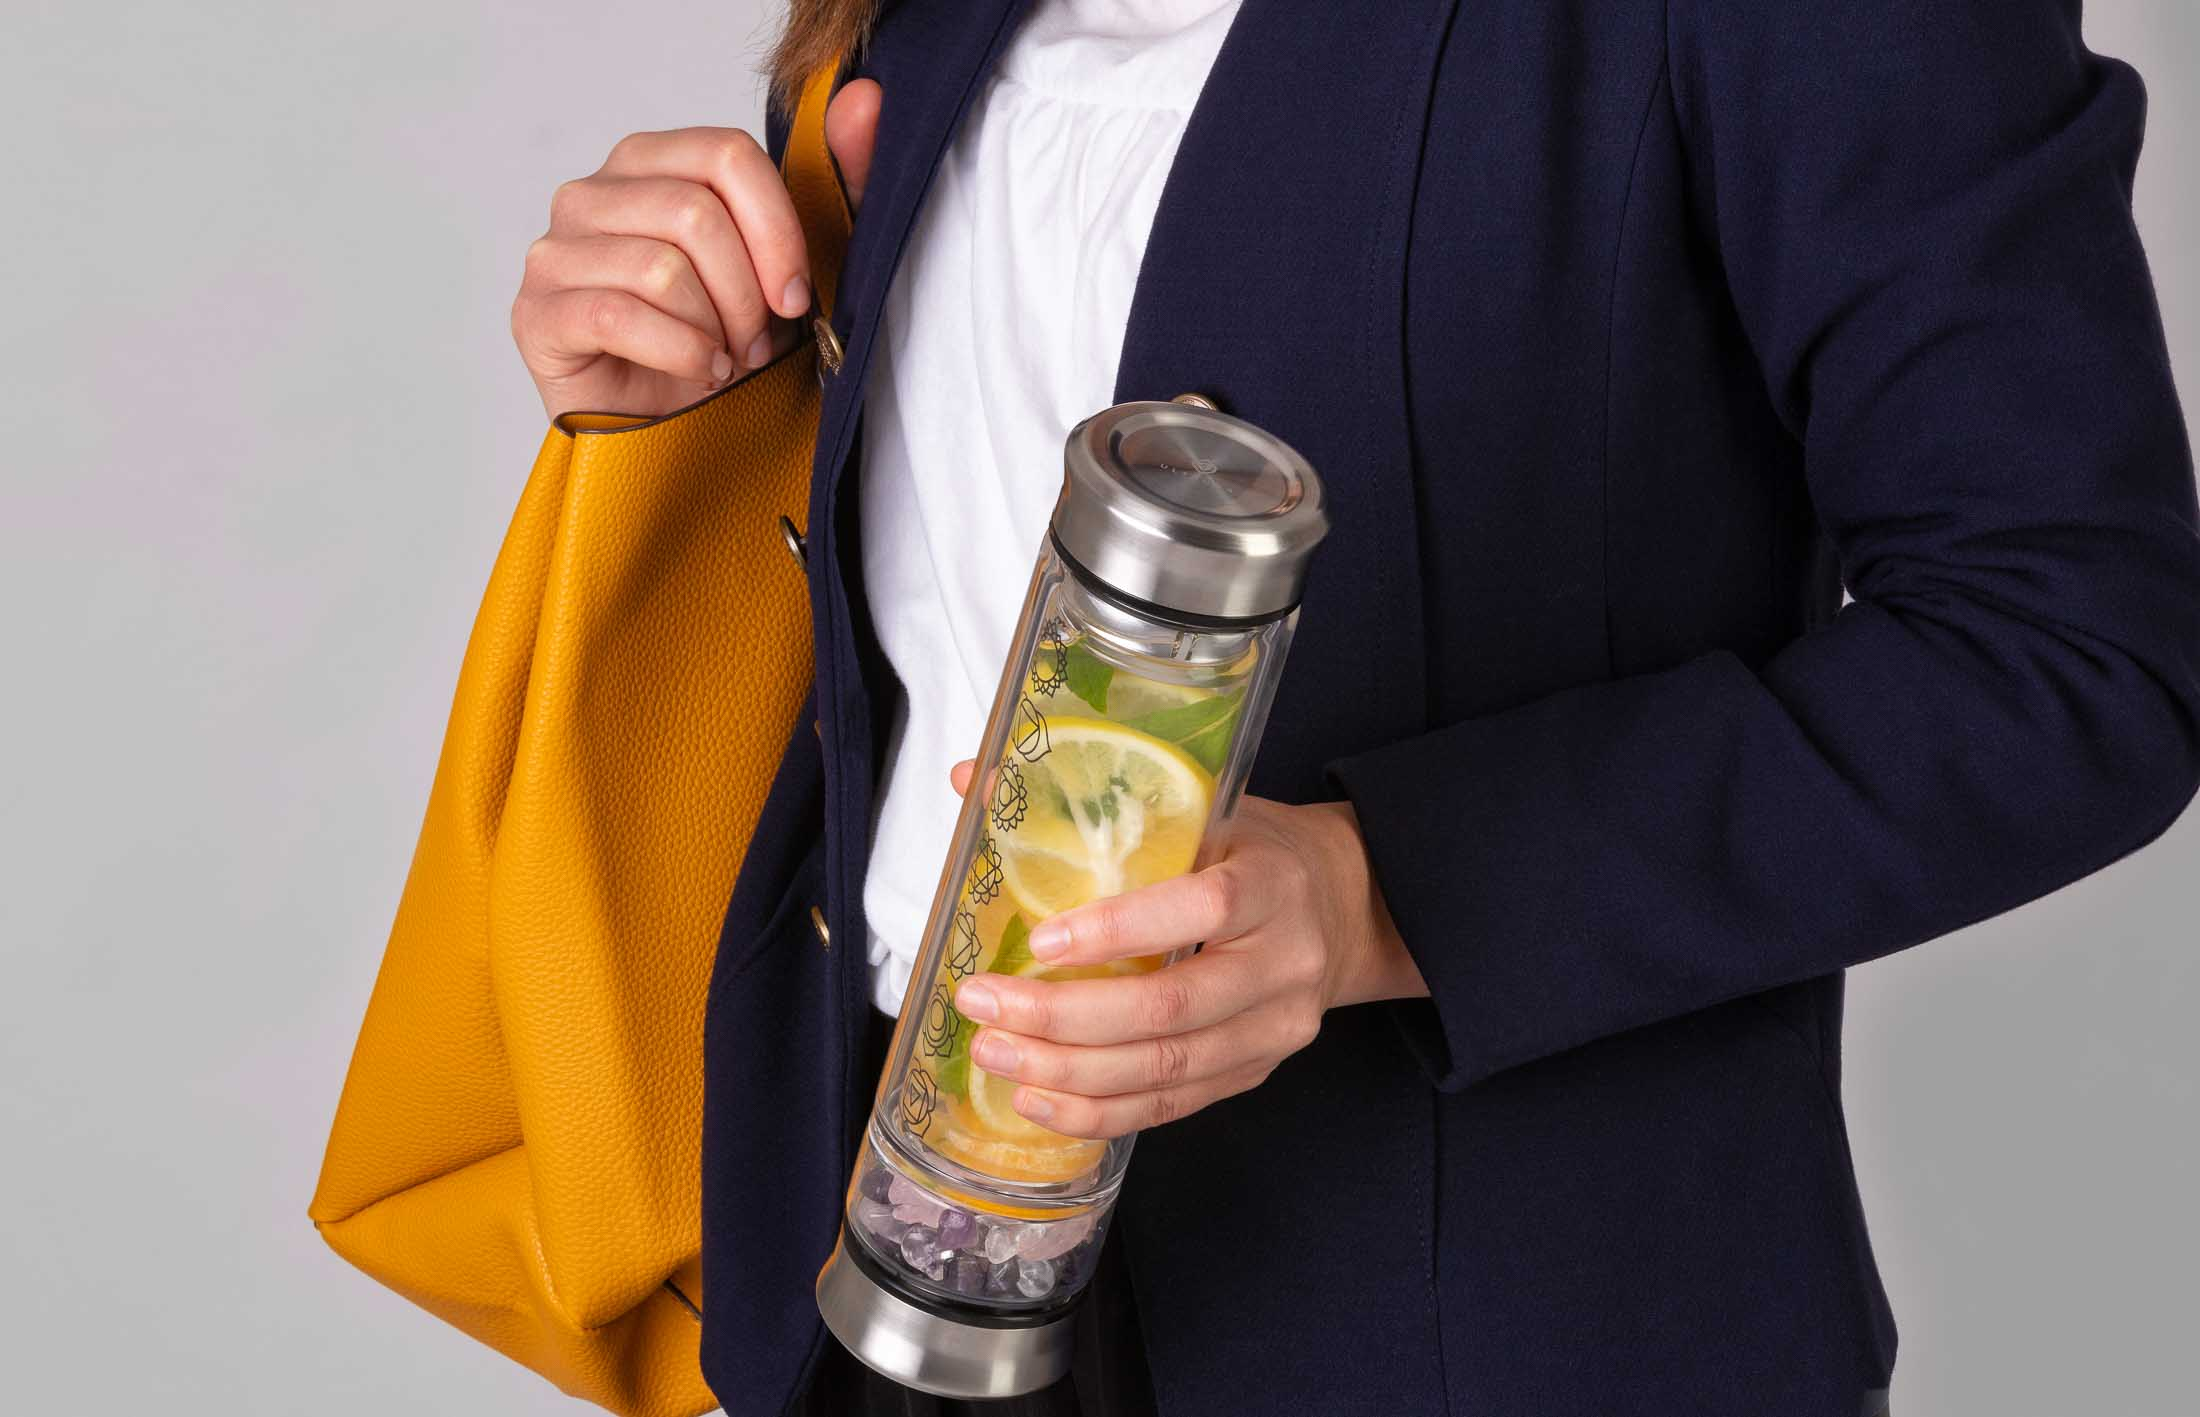 Water Infuser Business look honding bottle - Product in use sample